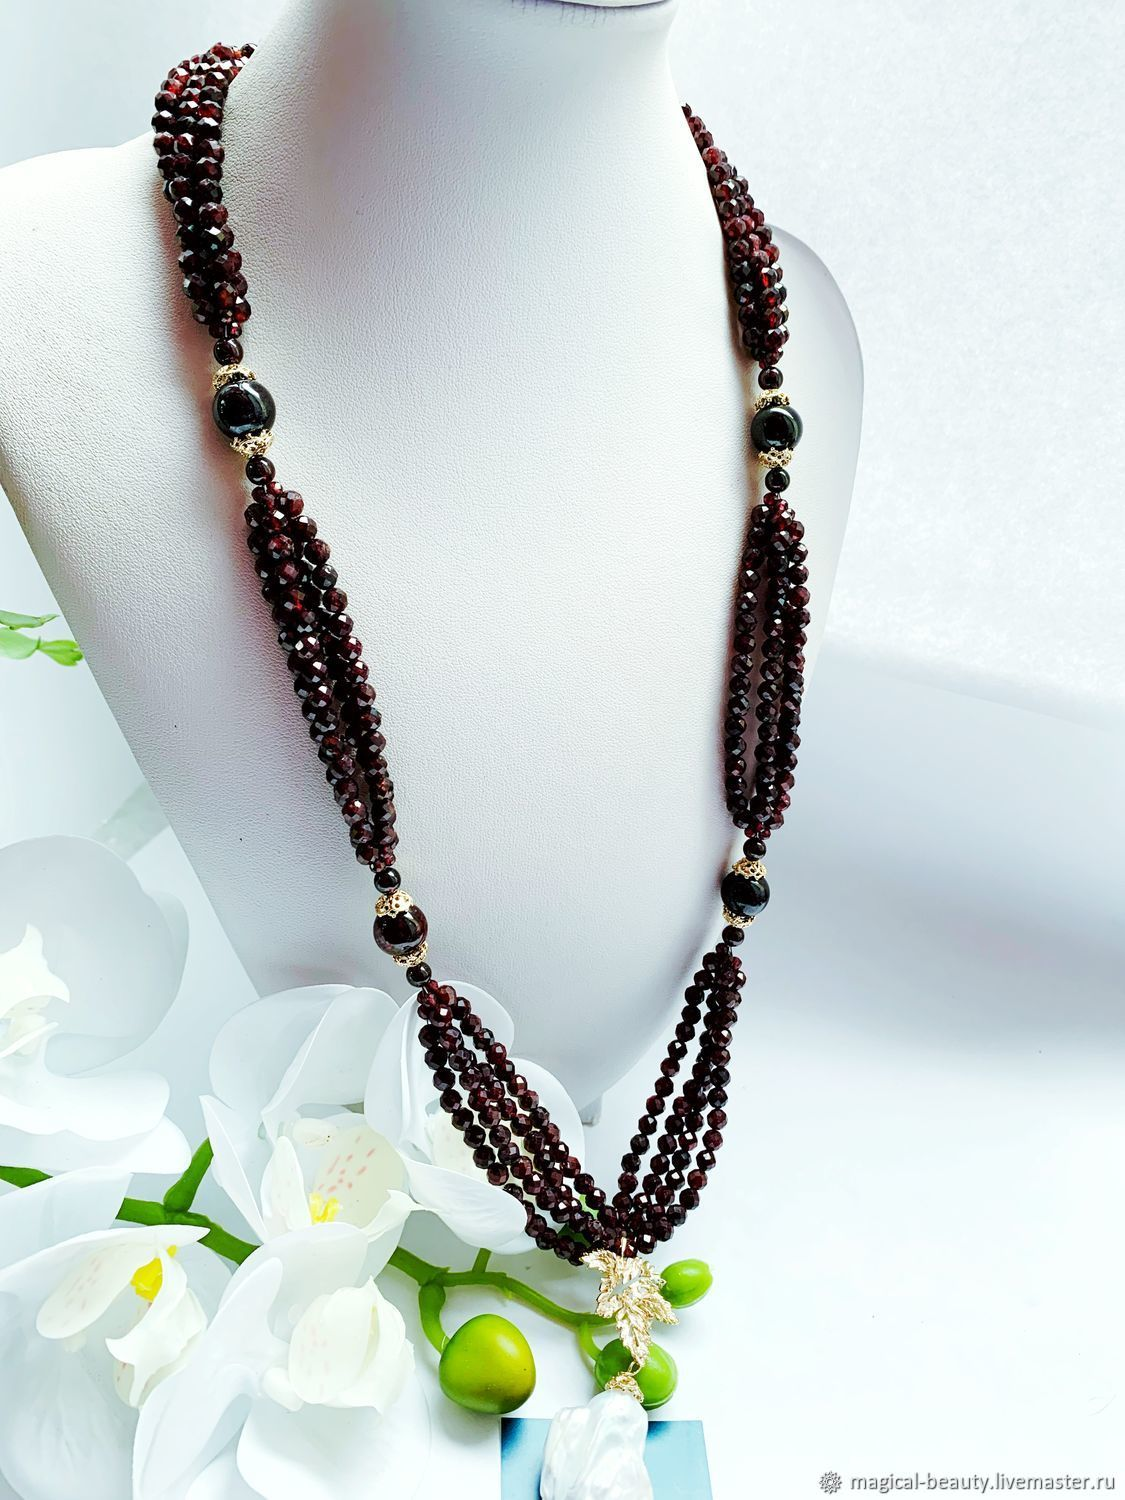 Necklace with garnet 'Glass of Burgundy wine', Necklace, Moscow,  Фото №1